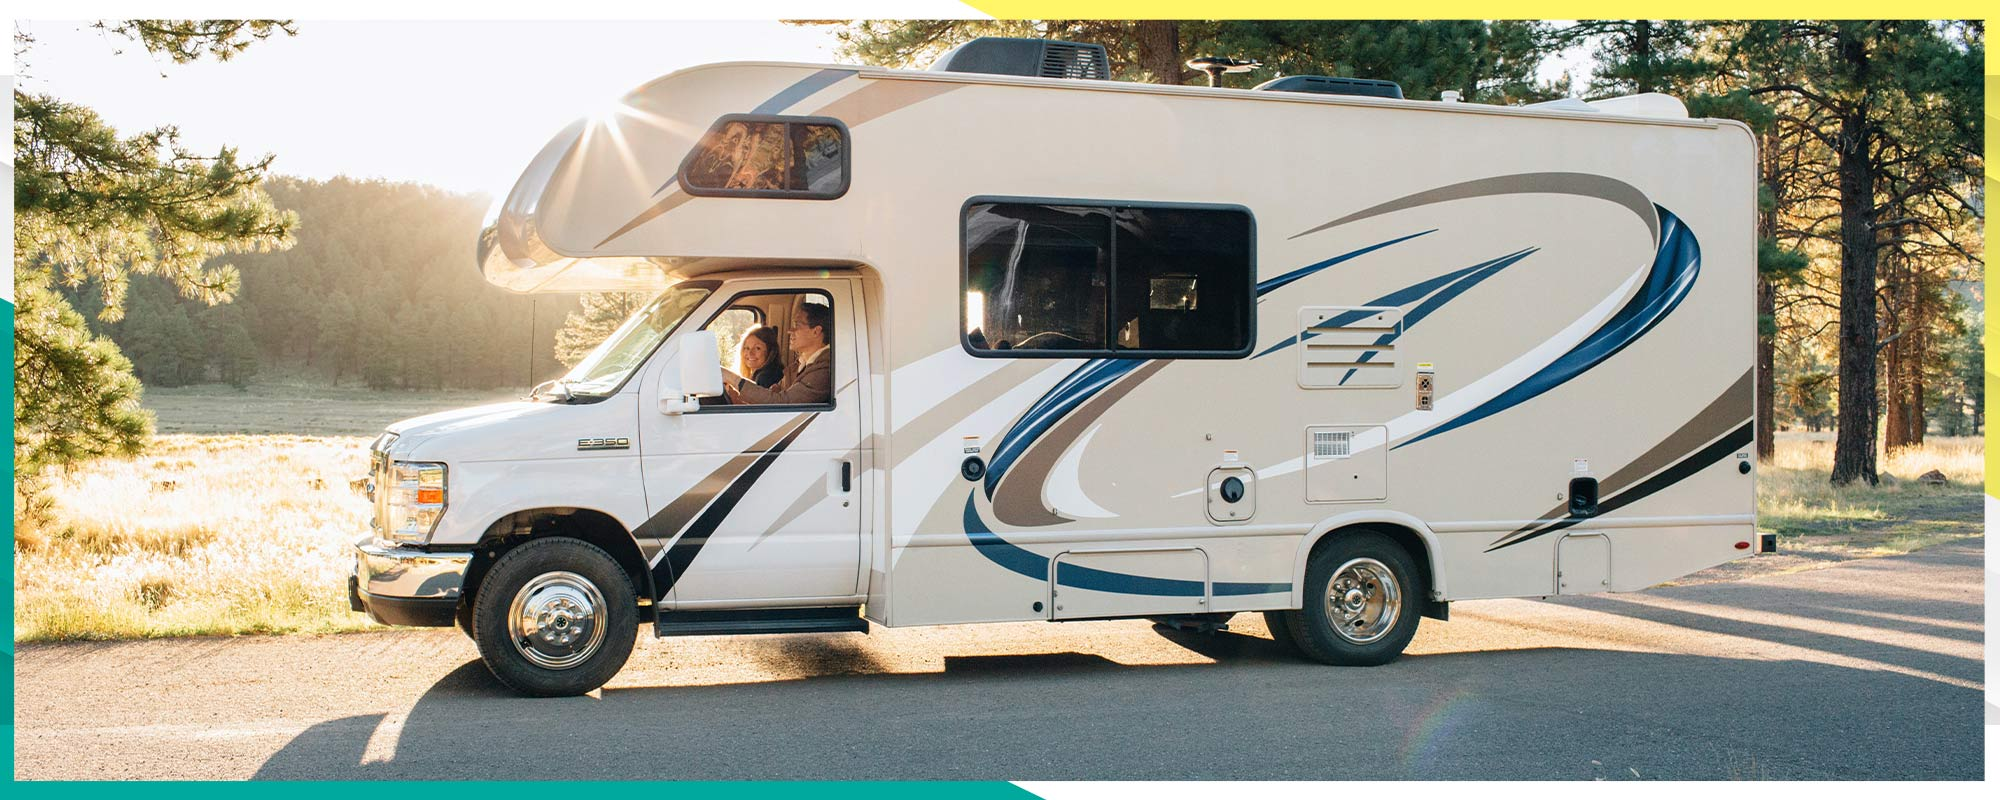 RV service summertime appointment